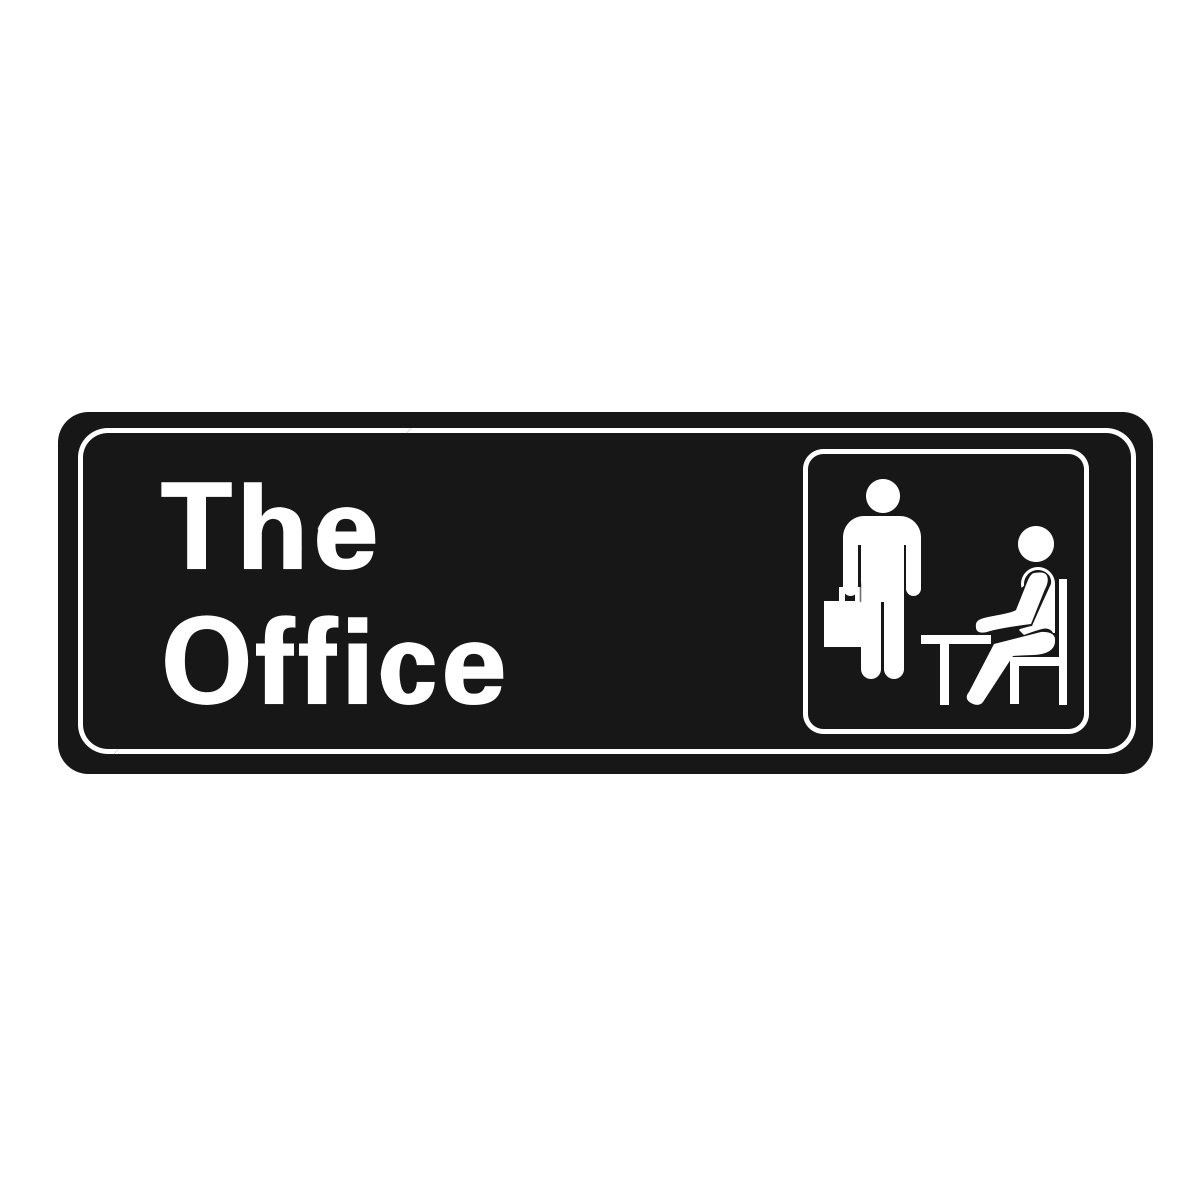 The Office Self Adhesive Sign, 9 X 3 Inch (Black / White) 1-Sign Visual Impact, For Door or Wall, Large or Small Office By Veronica by Veronica